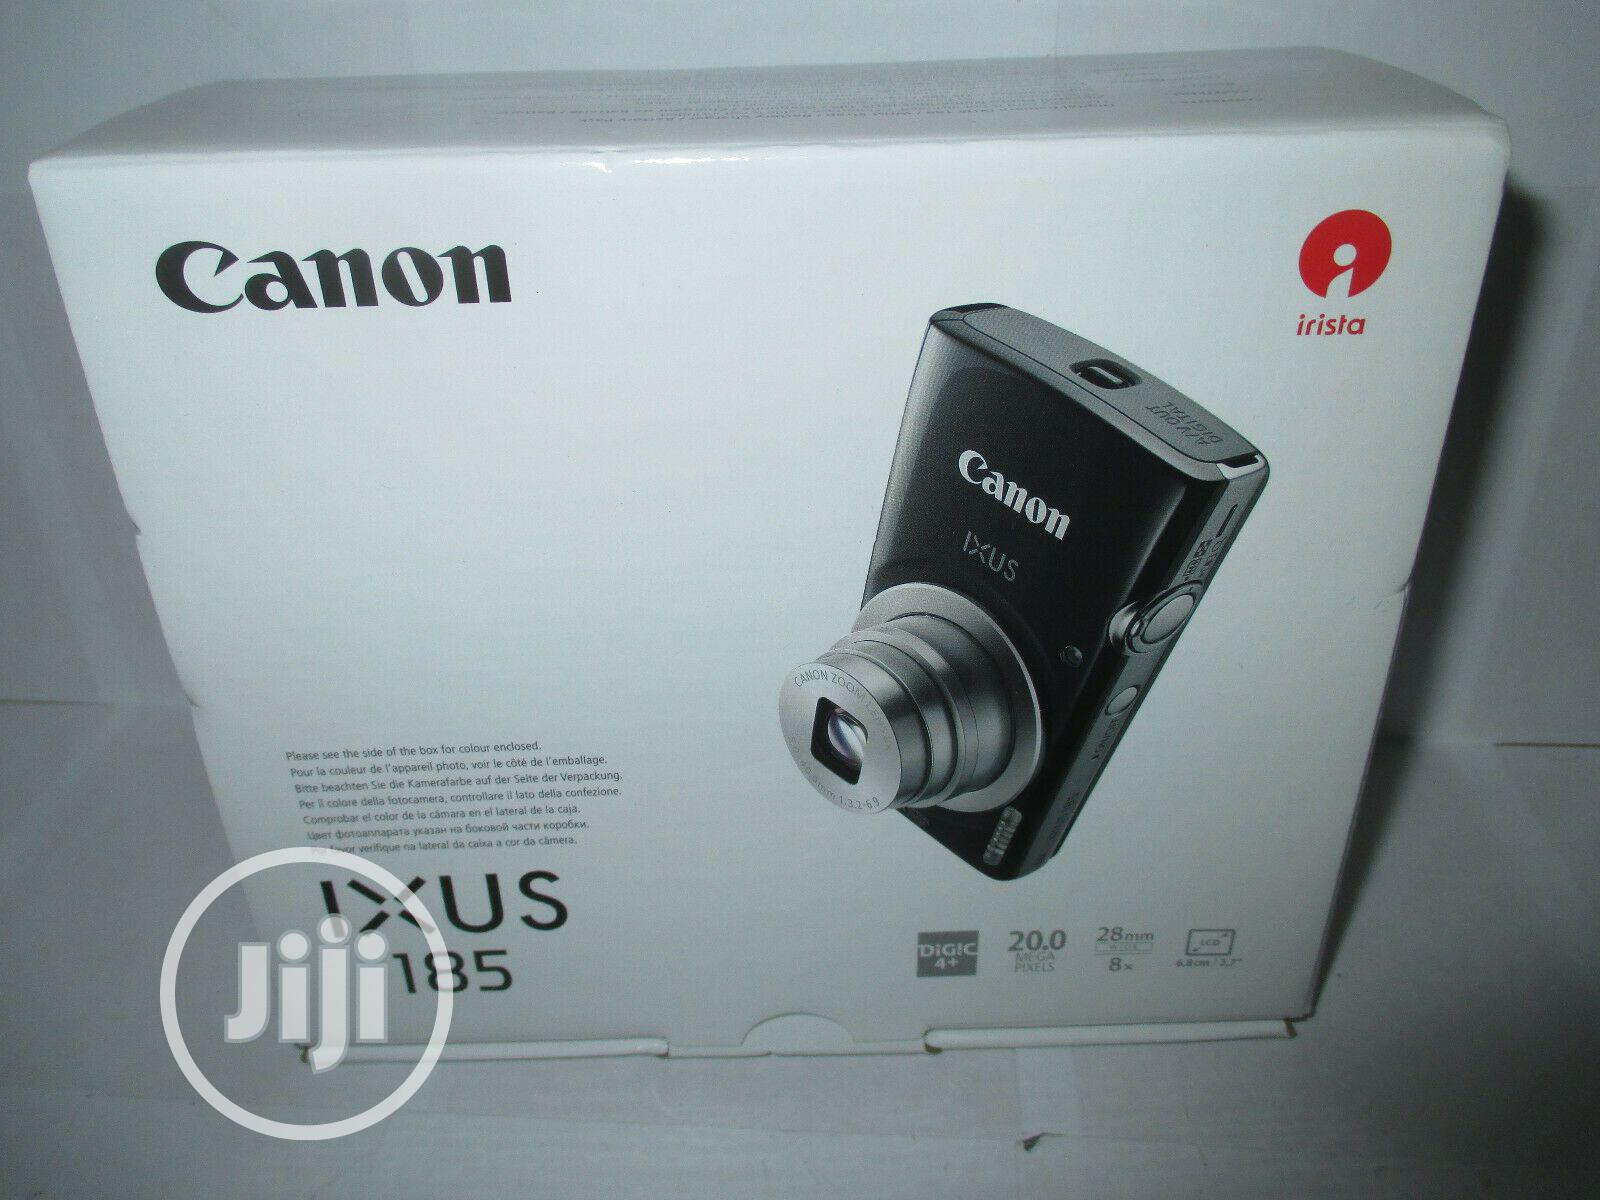 Canon Eos Ixus 185 Camera In Port Harcourt Photo Video Cameras Tradelink Computer Jiji Ng For Sale In Port Harcourt Buy Photo Video Cameras From Tradelink Computer On Jiji Ng